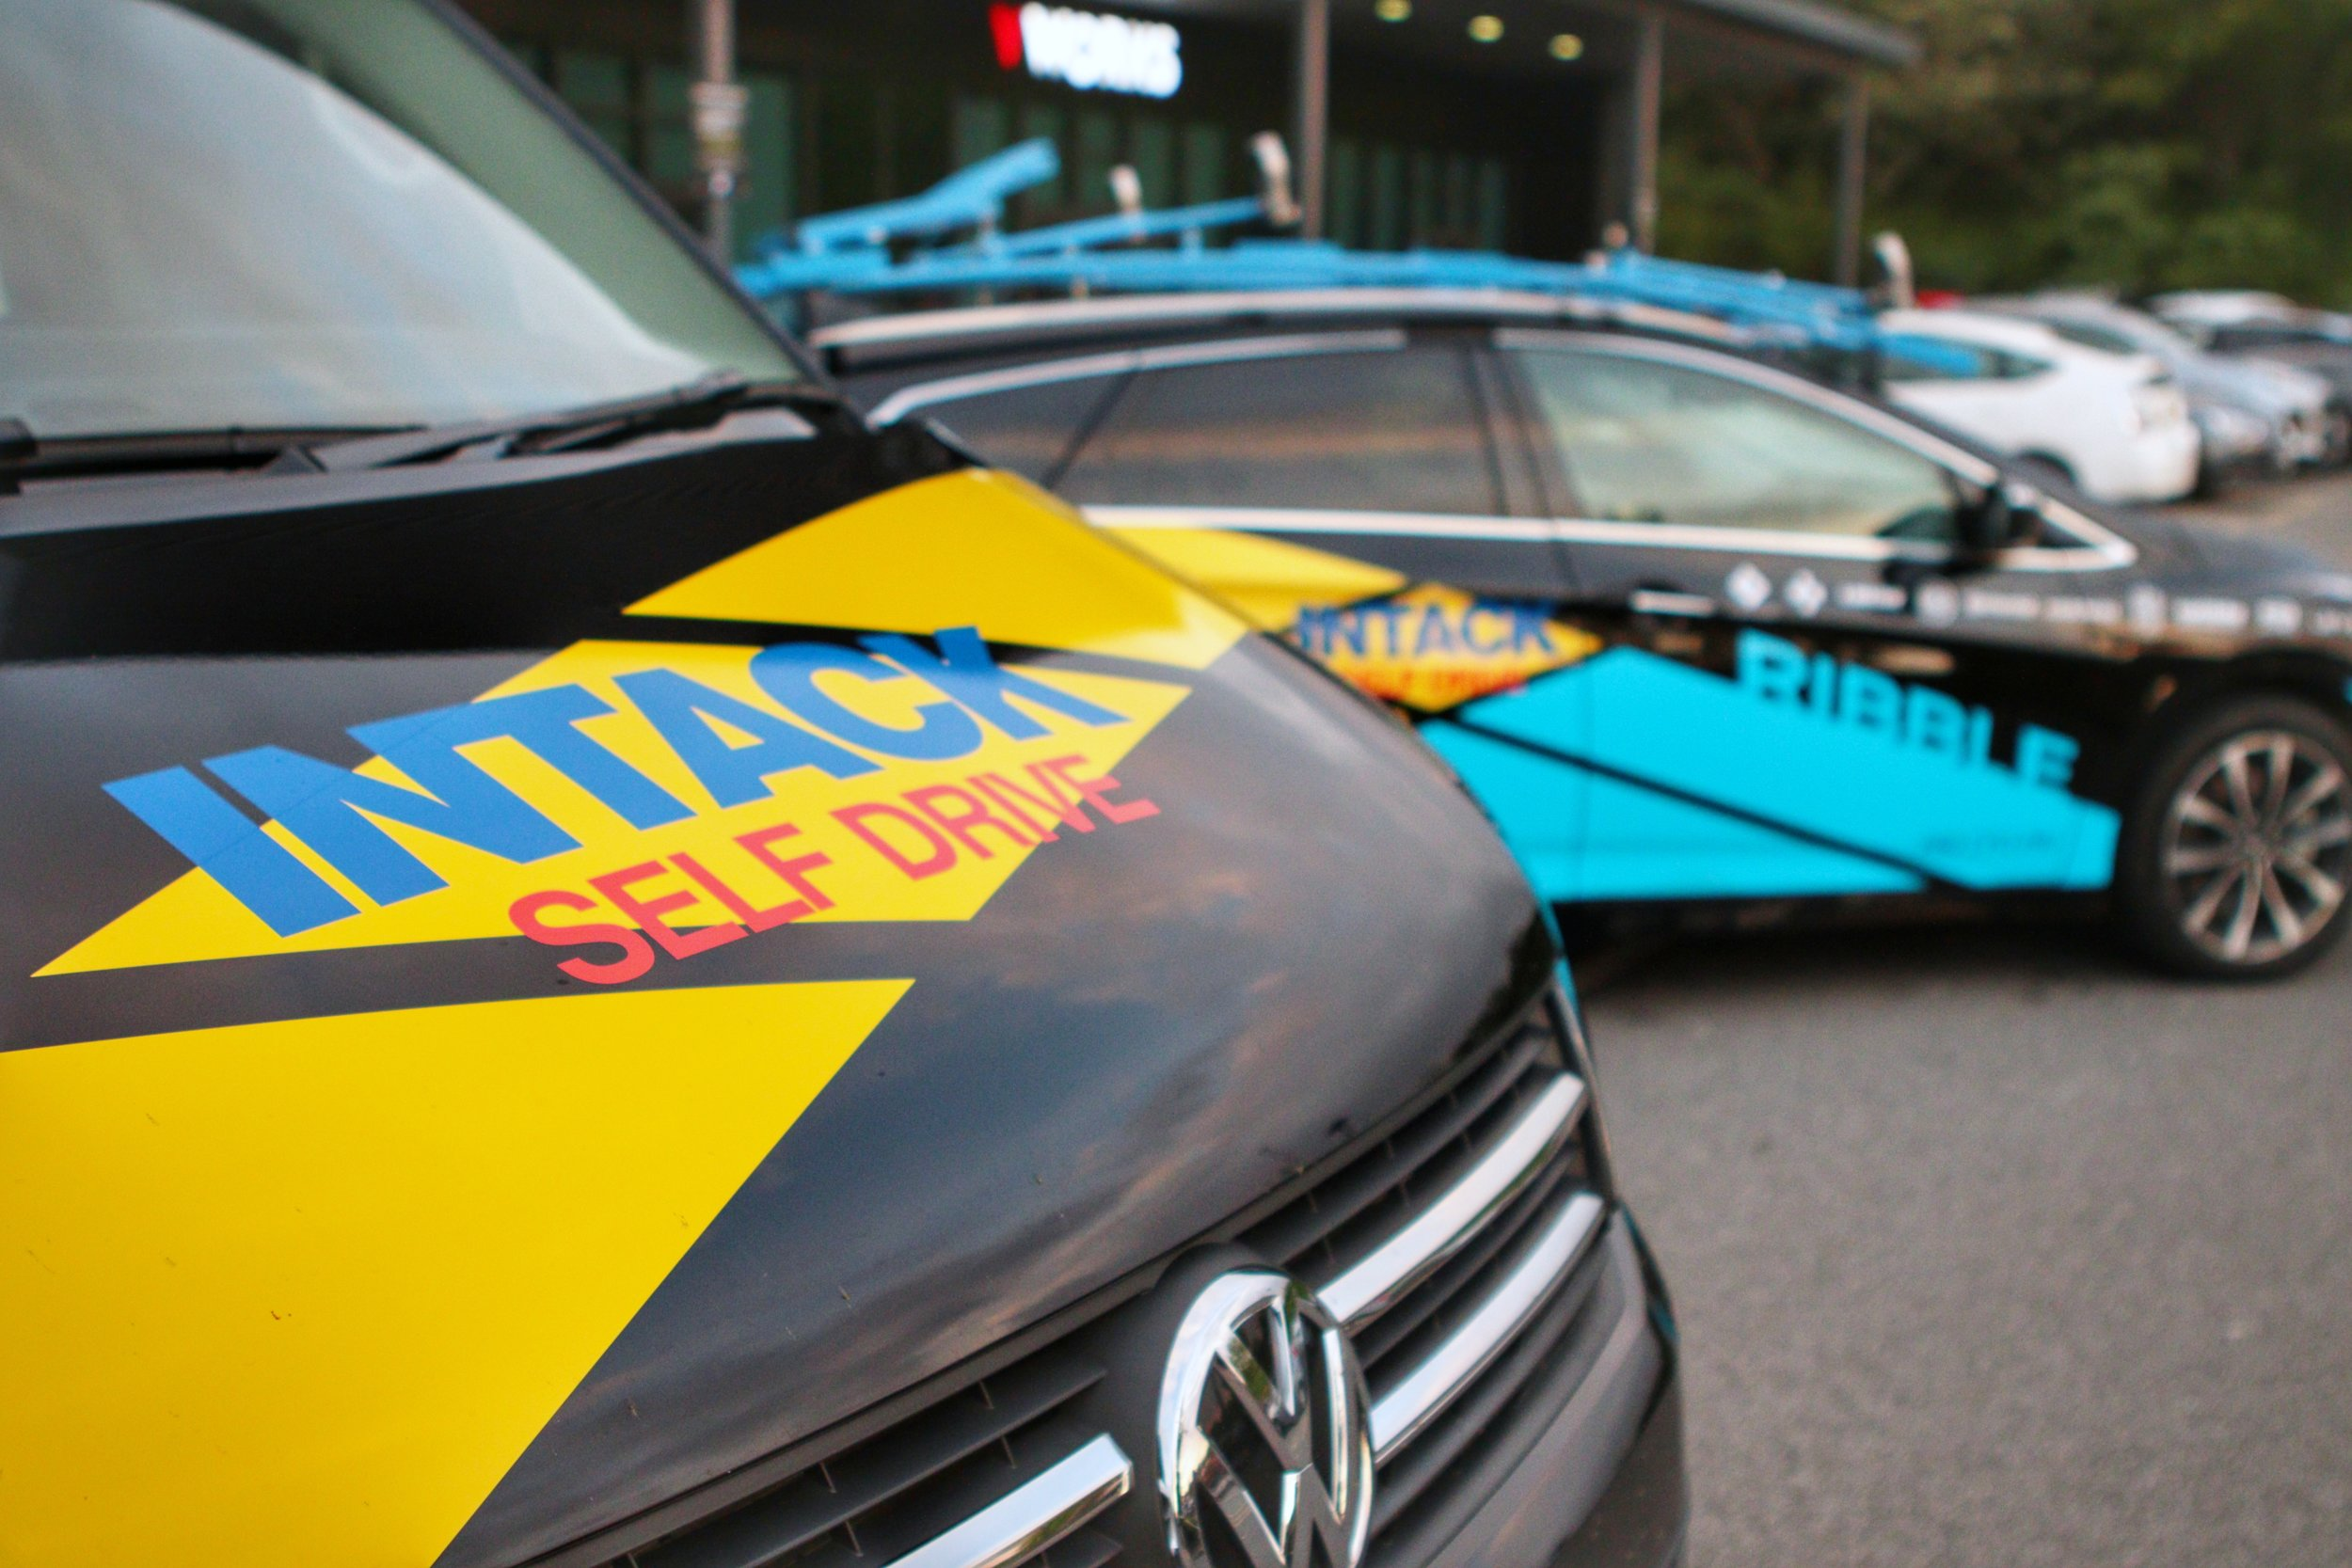 Intack Self Drive partners with Ribble Pro Cycling ...